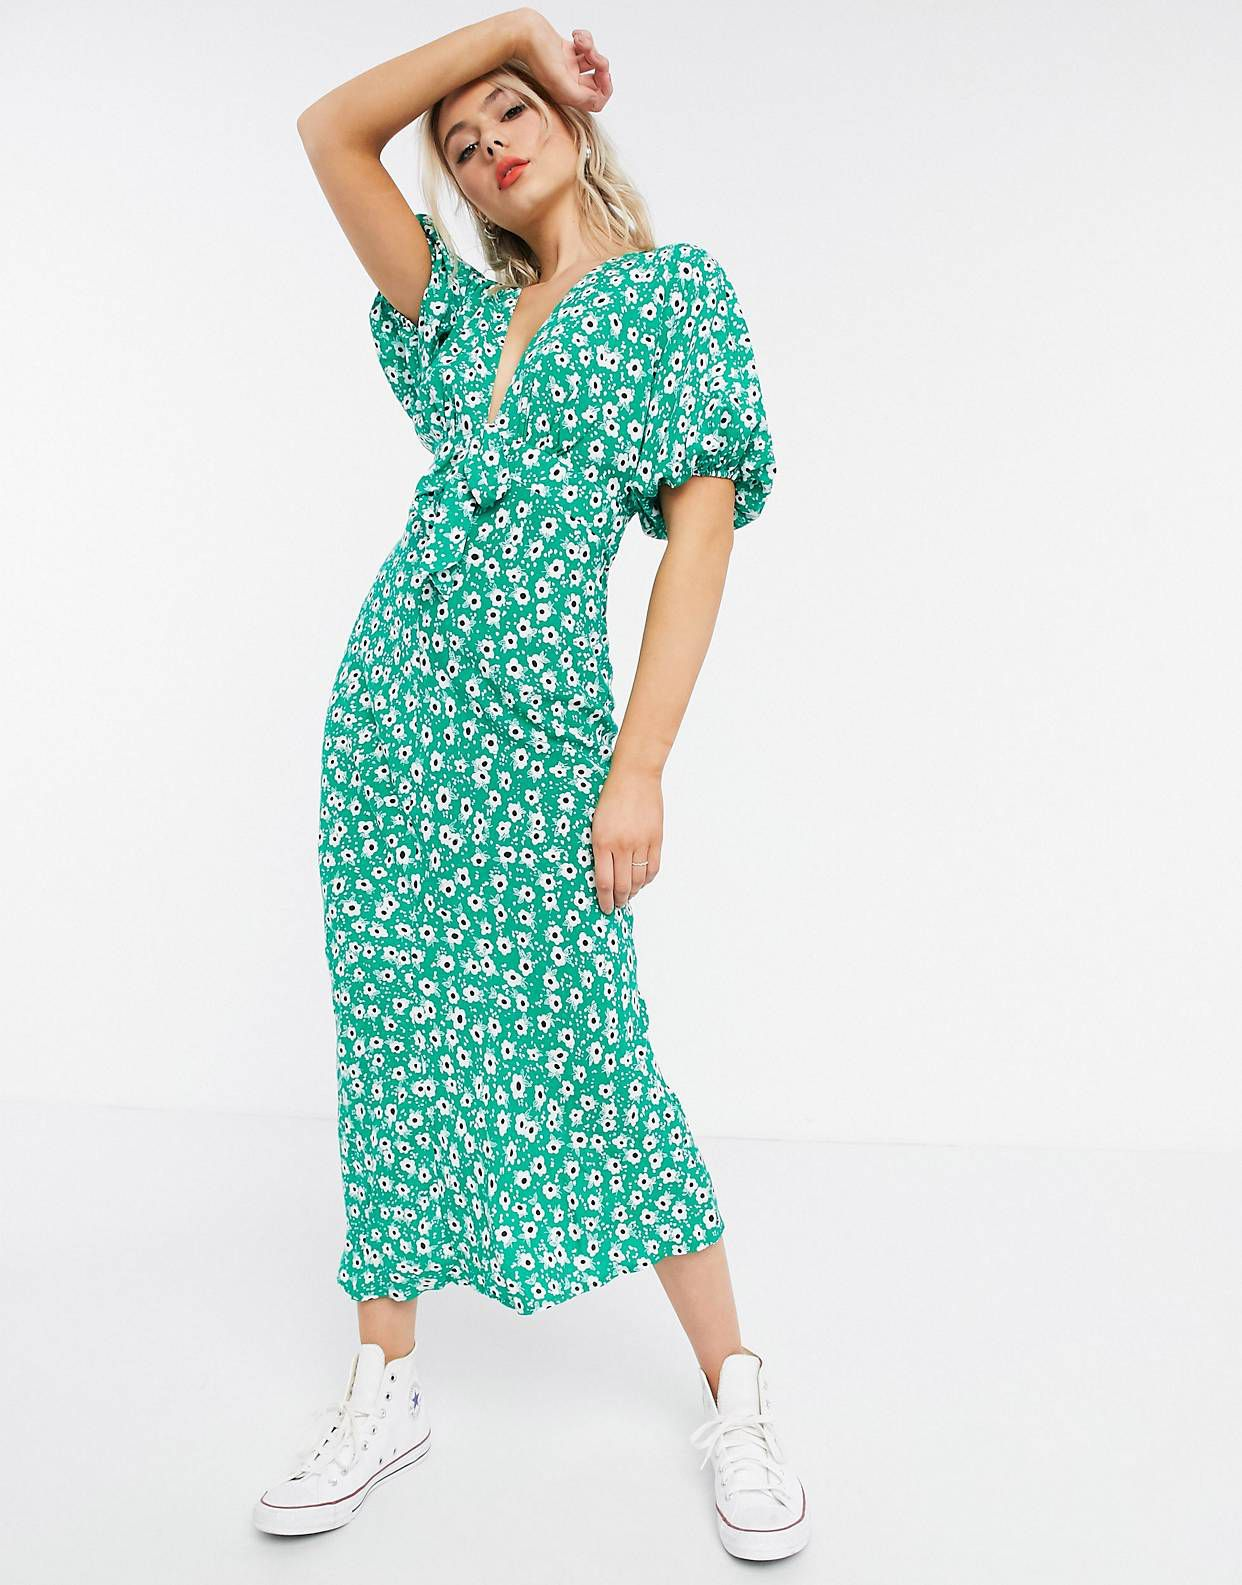 Pin By Teenie Lyro On I Guess I Ll Marry You In 2020 Tea Dress Dresses Asos Designs